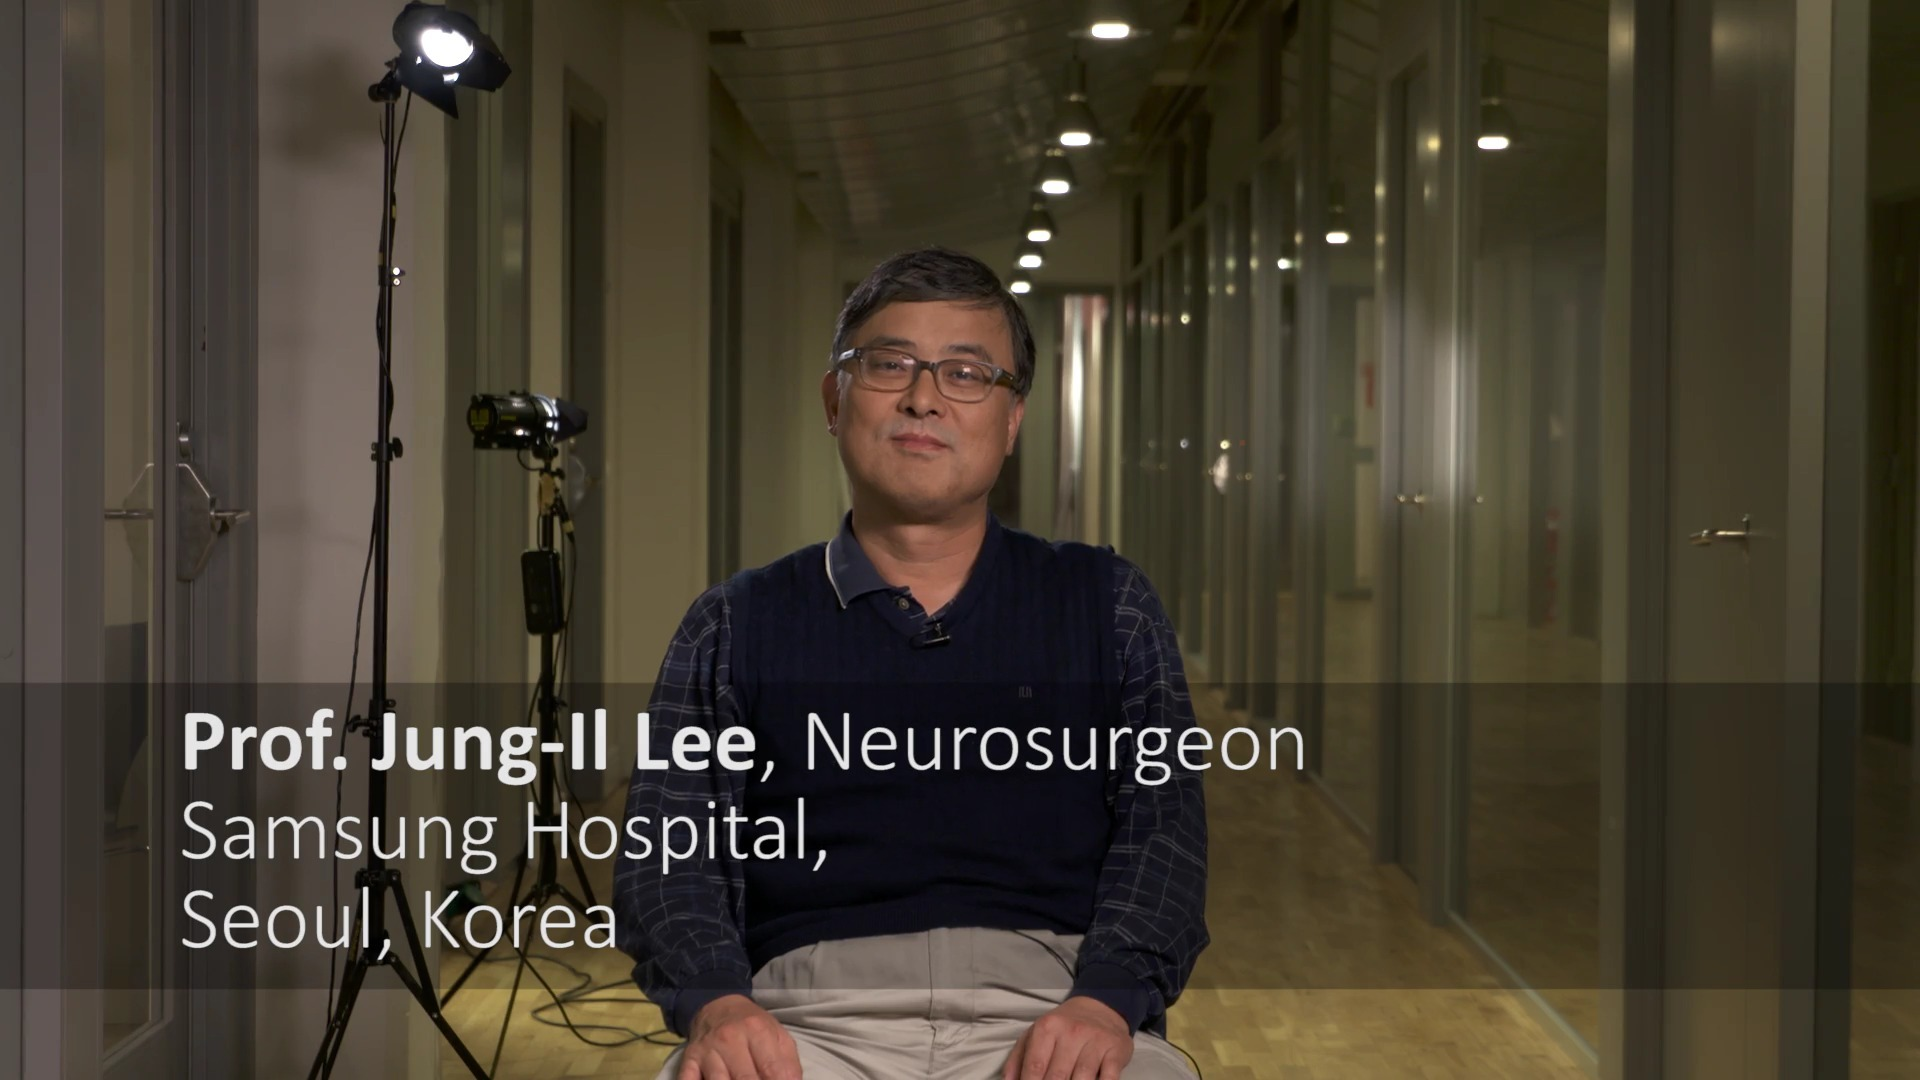 Cranial SRS with Icon - Jung-Il Lee